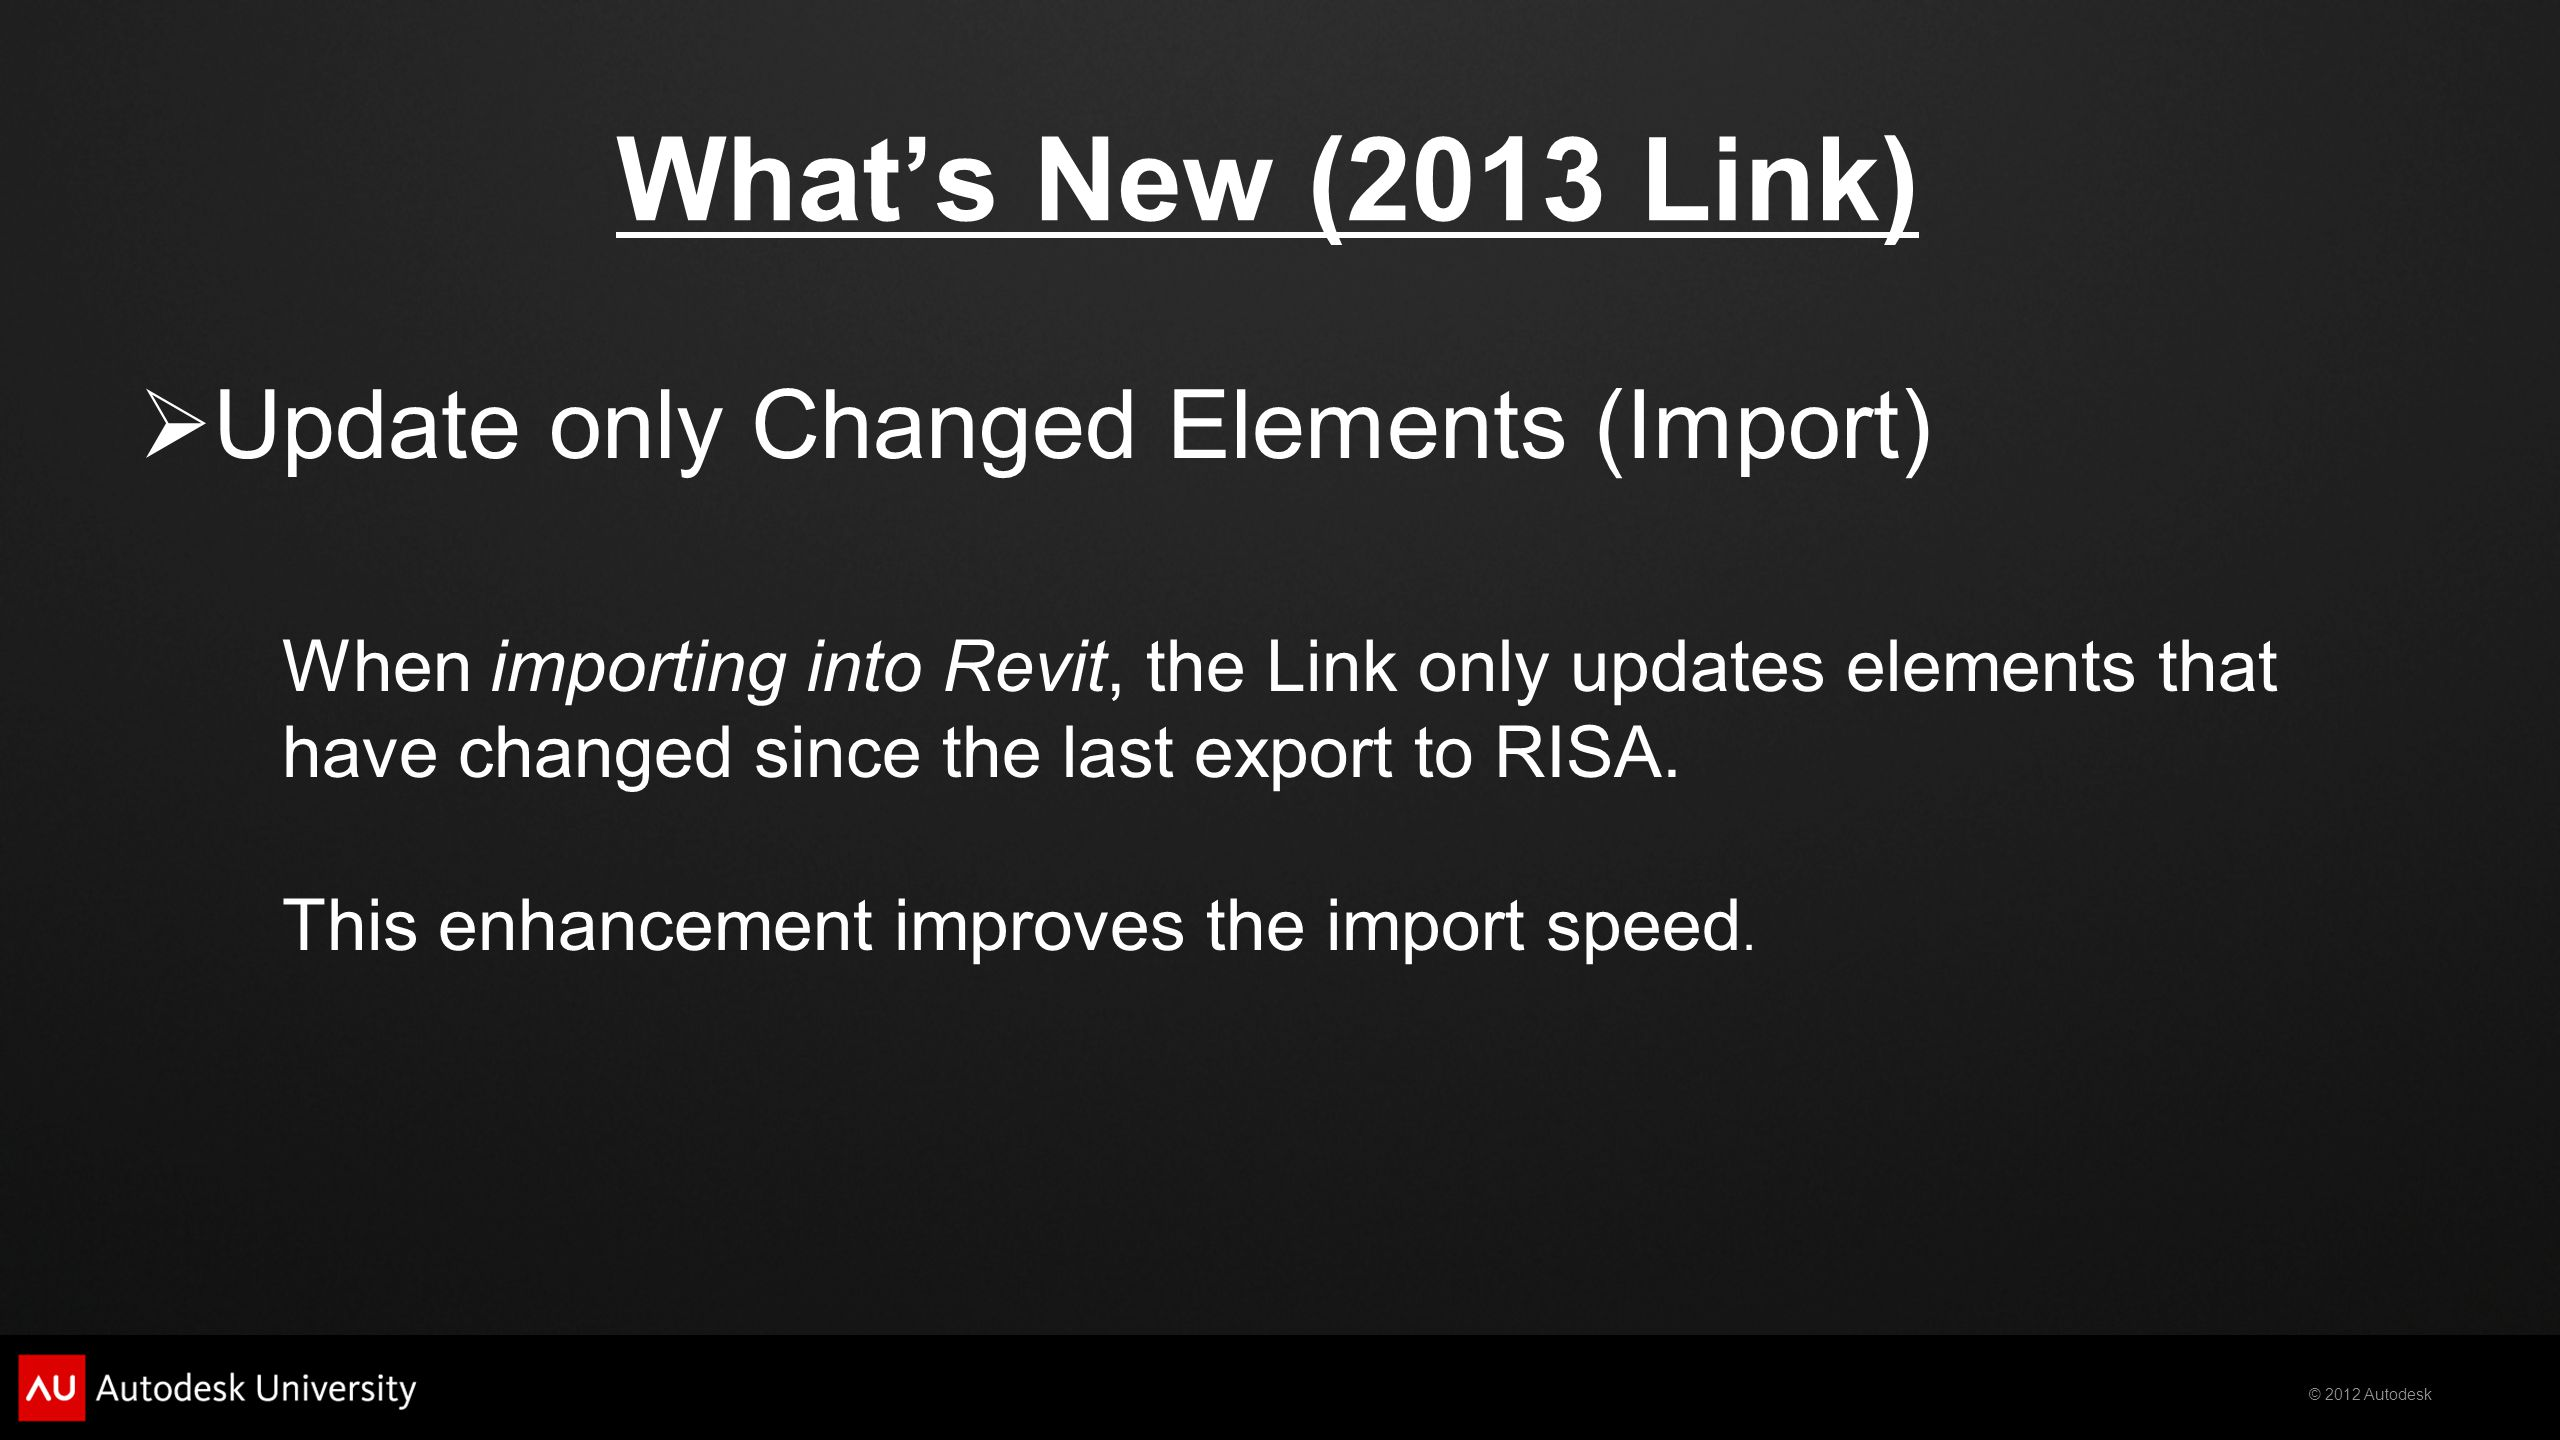 © 2012 Autodesk What's New (2013 Link)  Update only Changed Elements (Import) When importing into Revit, the Link only updates elements that have changed since the last export to RISA.